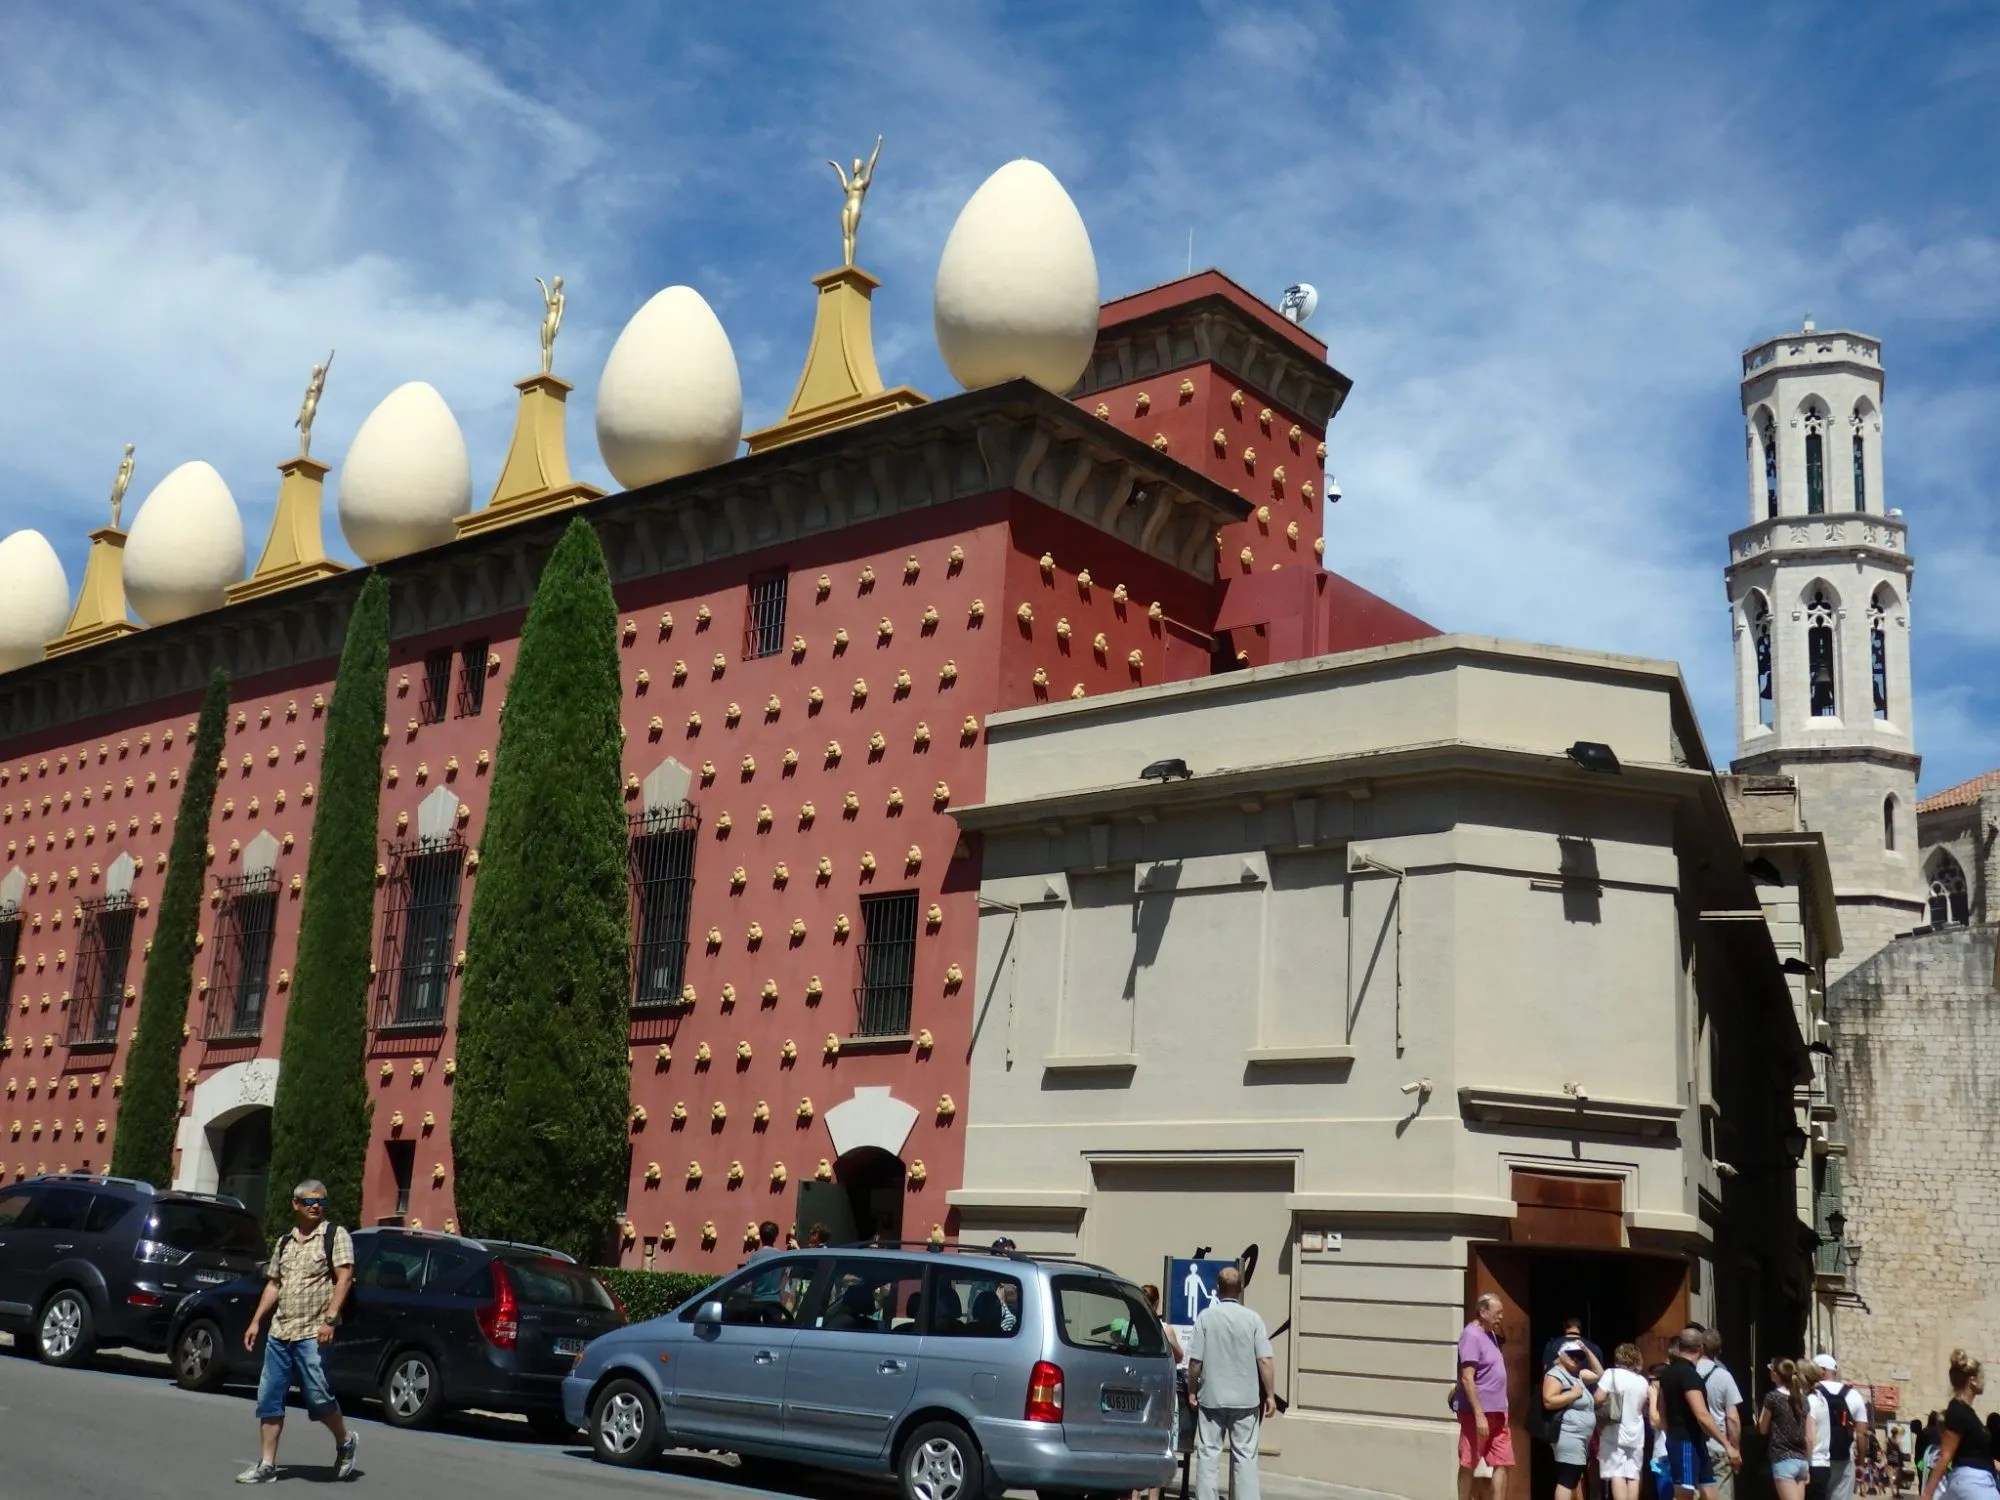 the Dali Theatre-Museum in Figueres, Spain